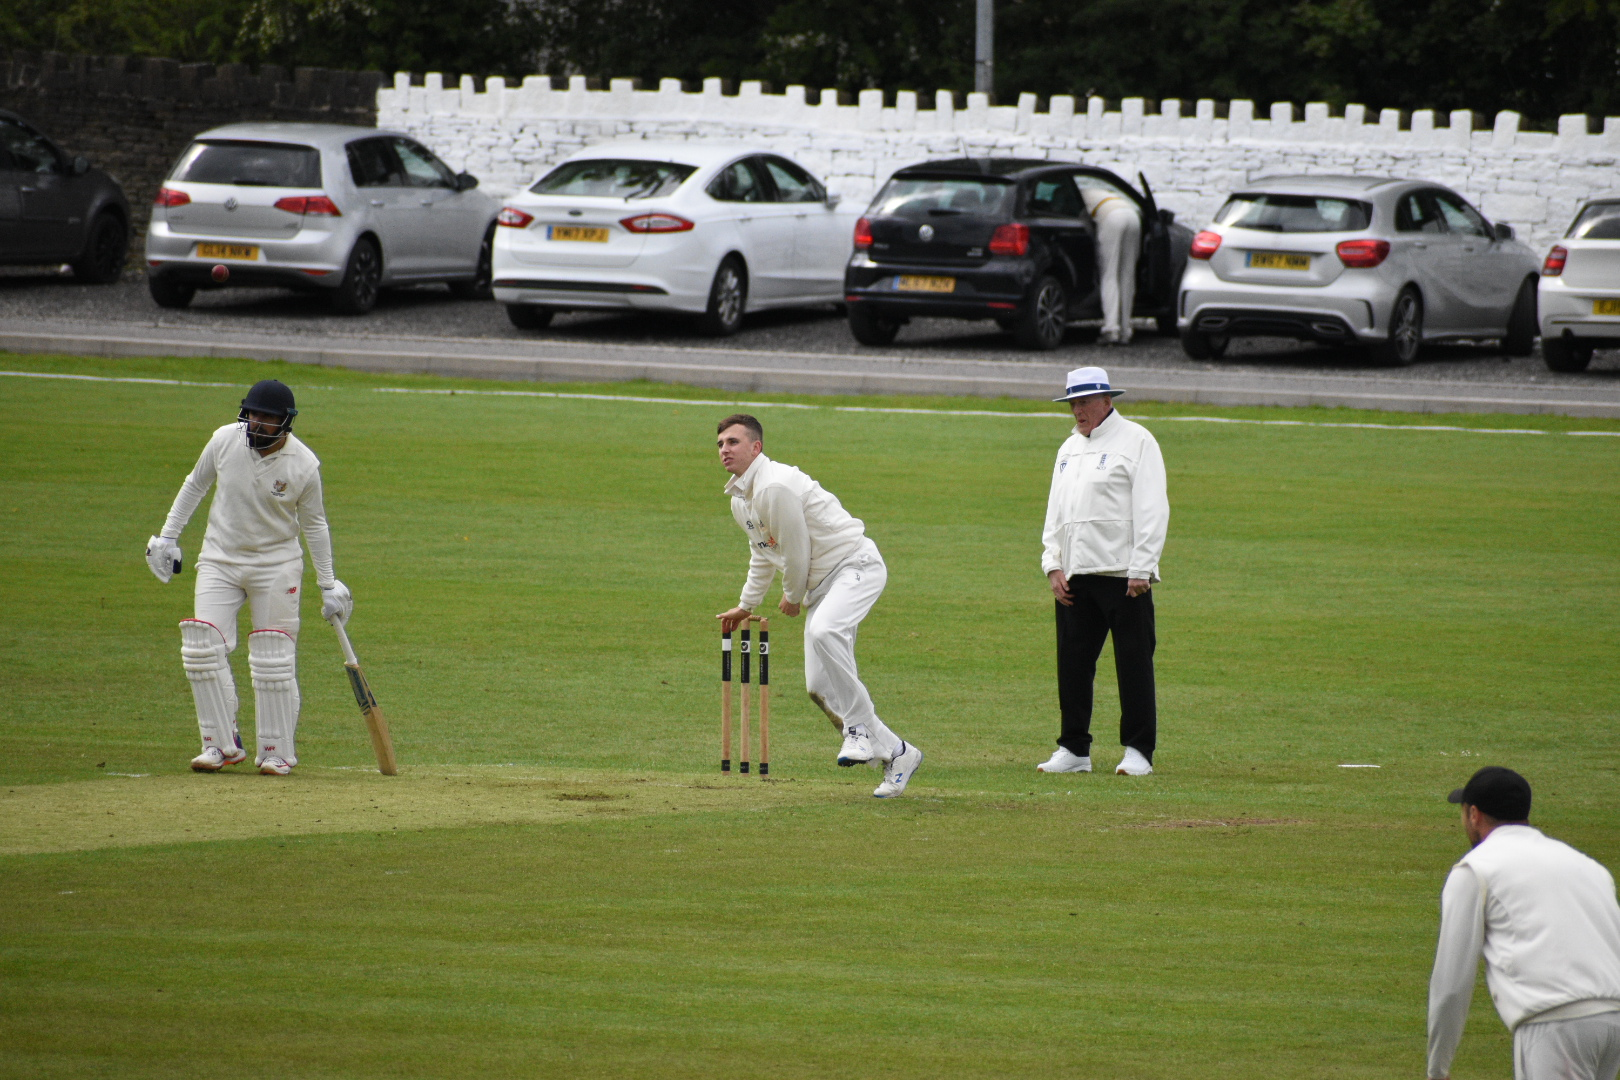 Honley Beat Swaine & Weather To Join Mix - Premiership Day 15 Review